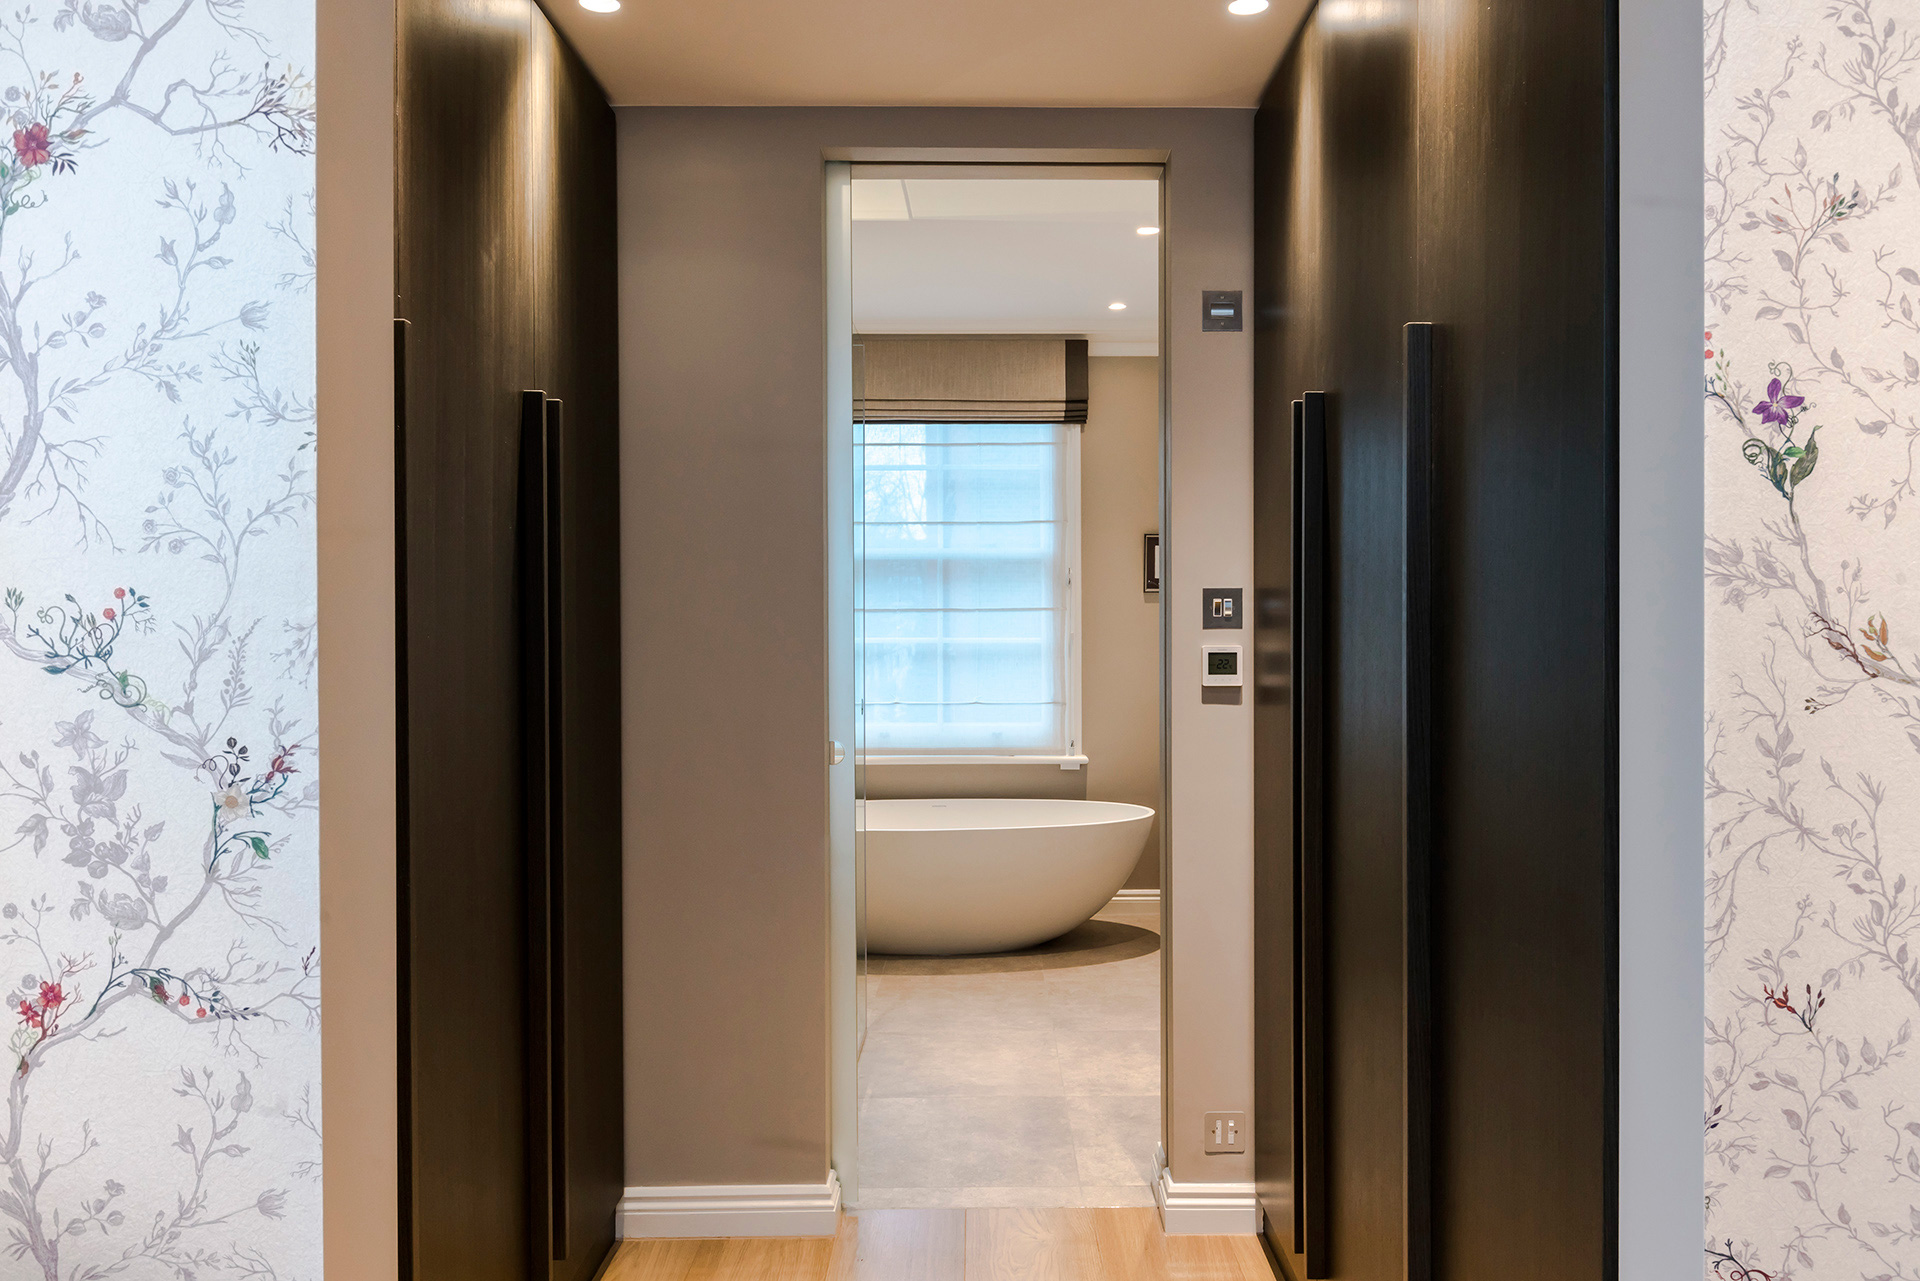 Studio 29 residential architects refurbishment kensington 11